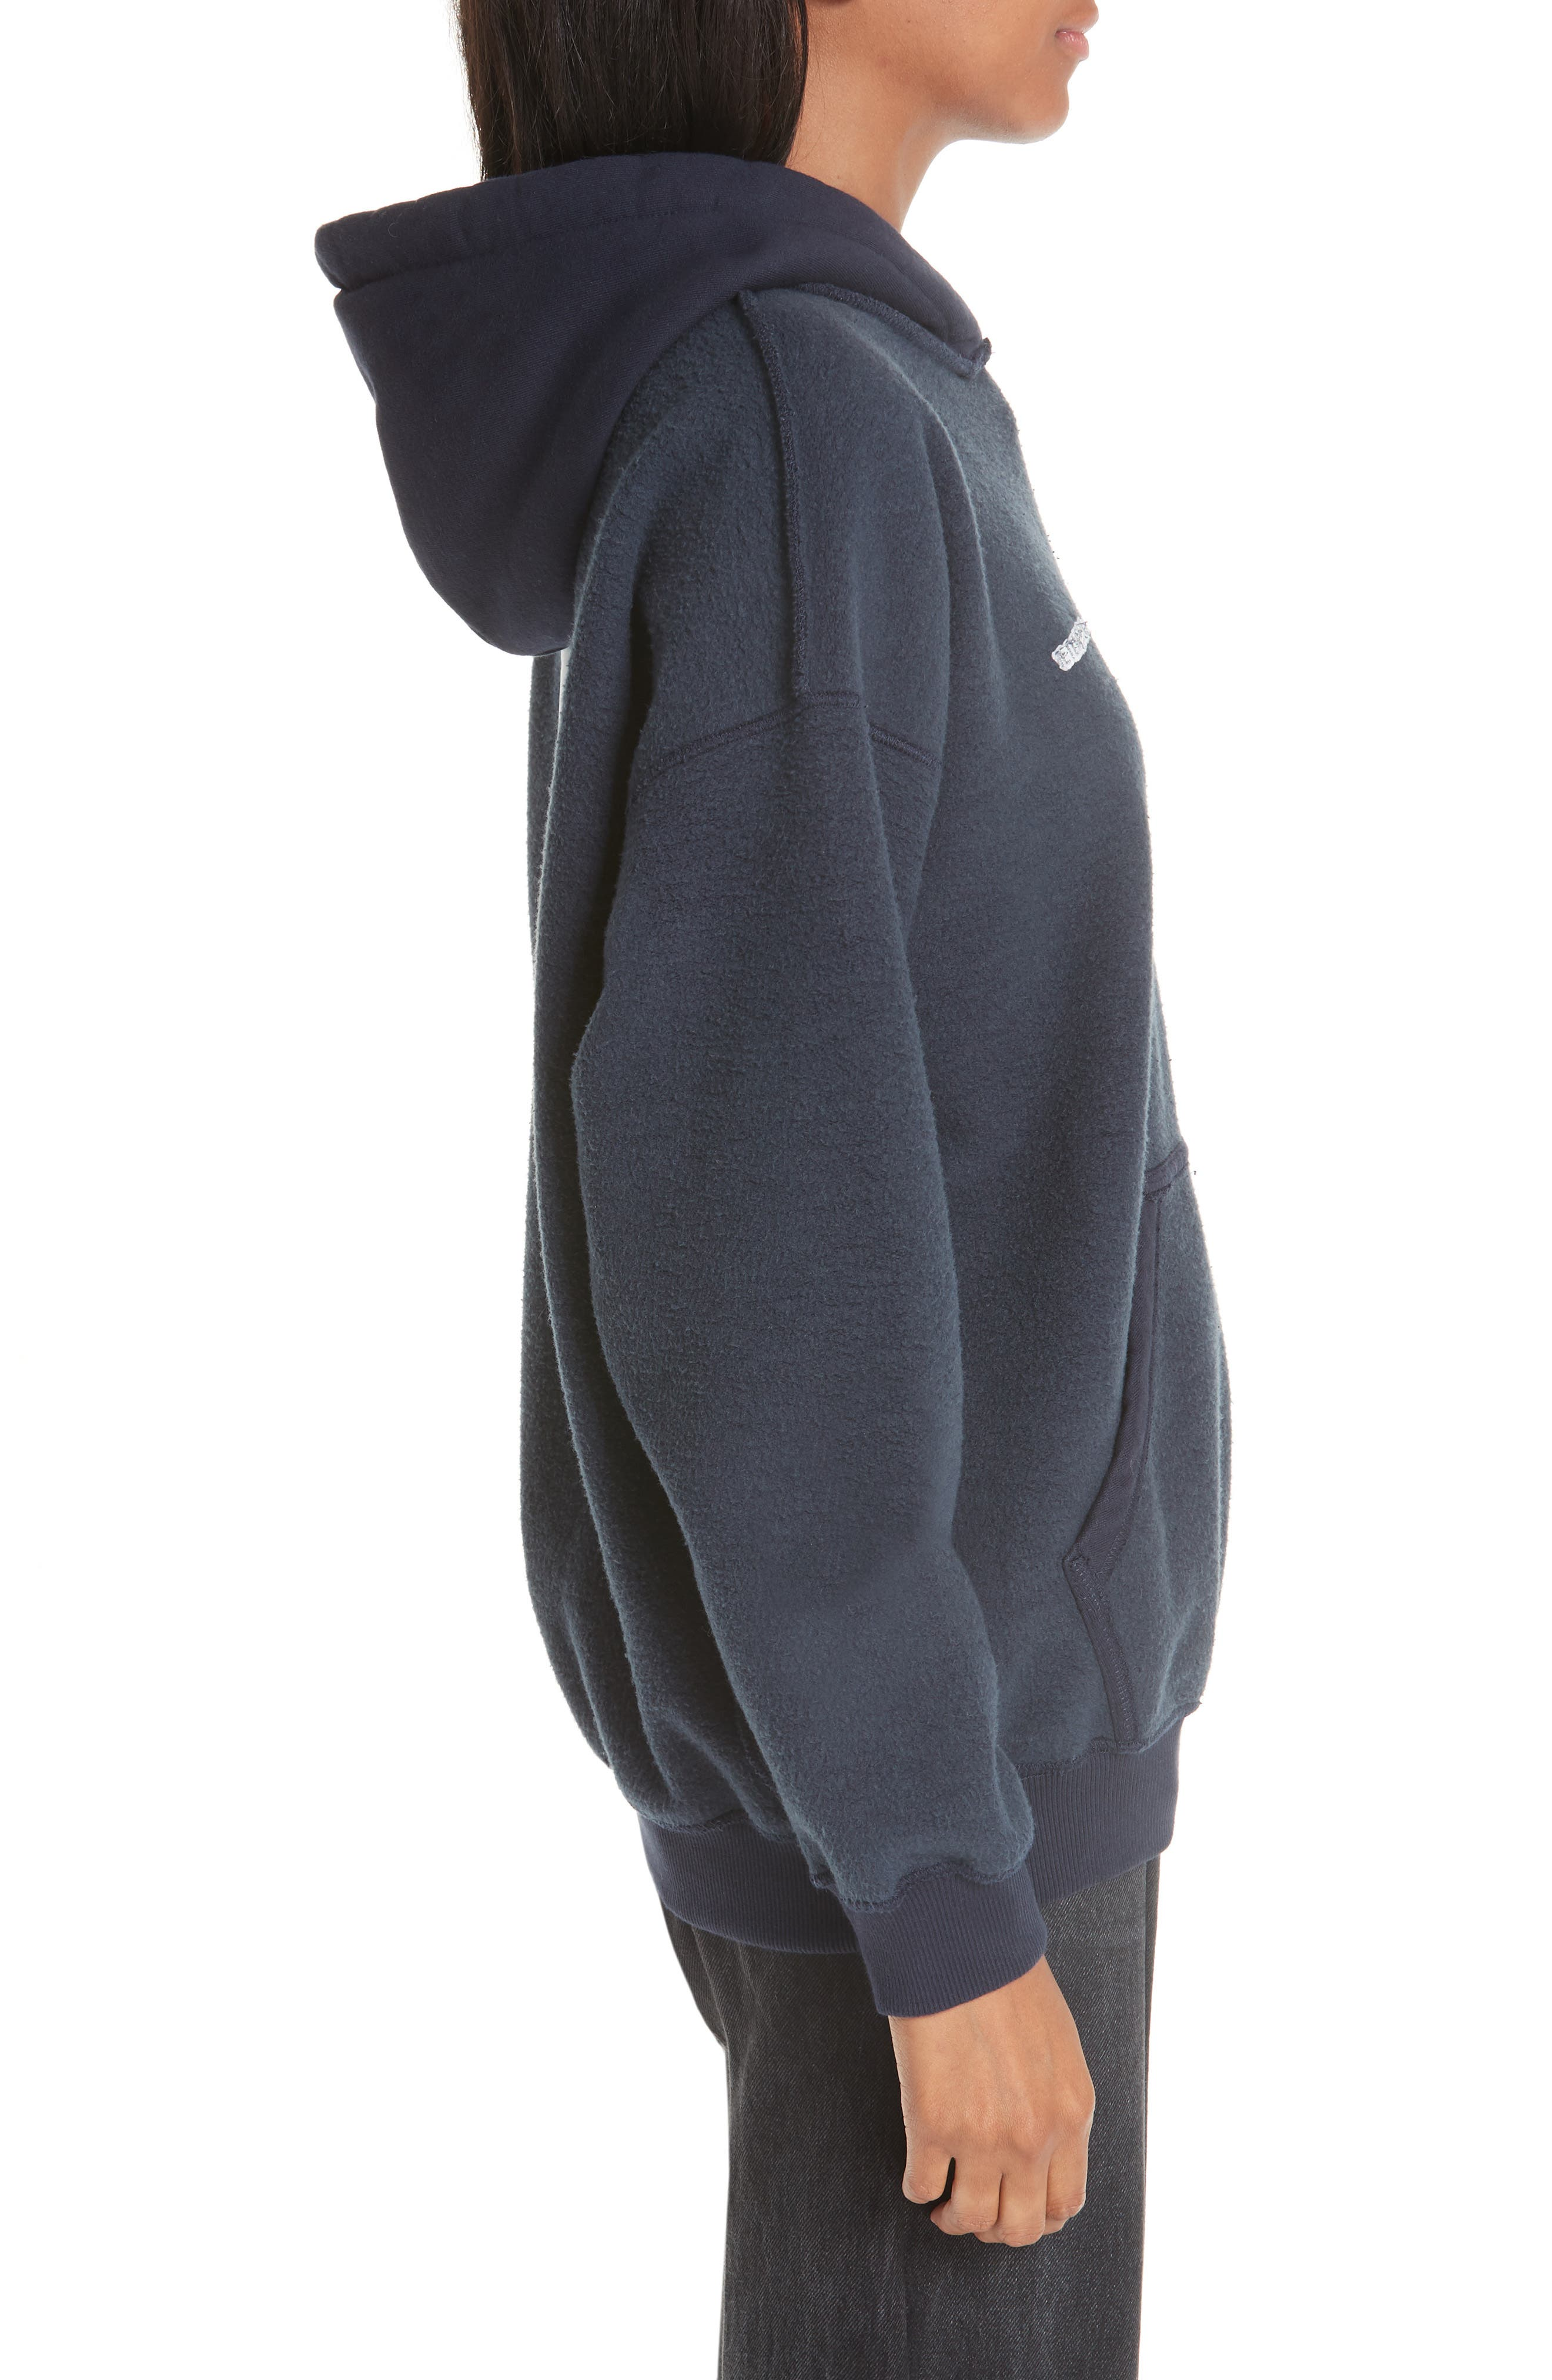 Inside-Out Hoodie,                             Alternate thumbnail 3, color,                             NAVY